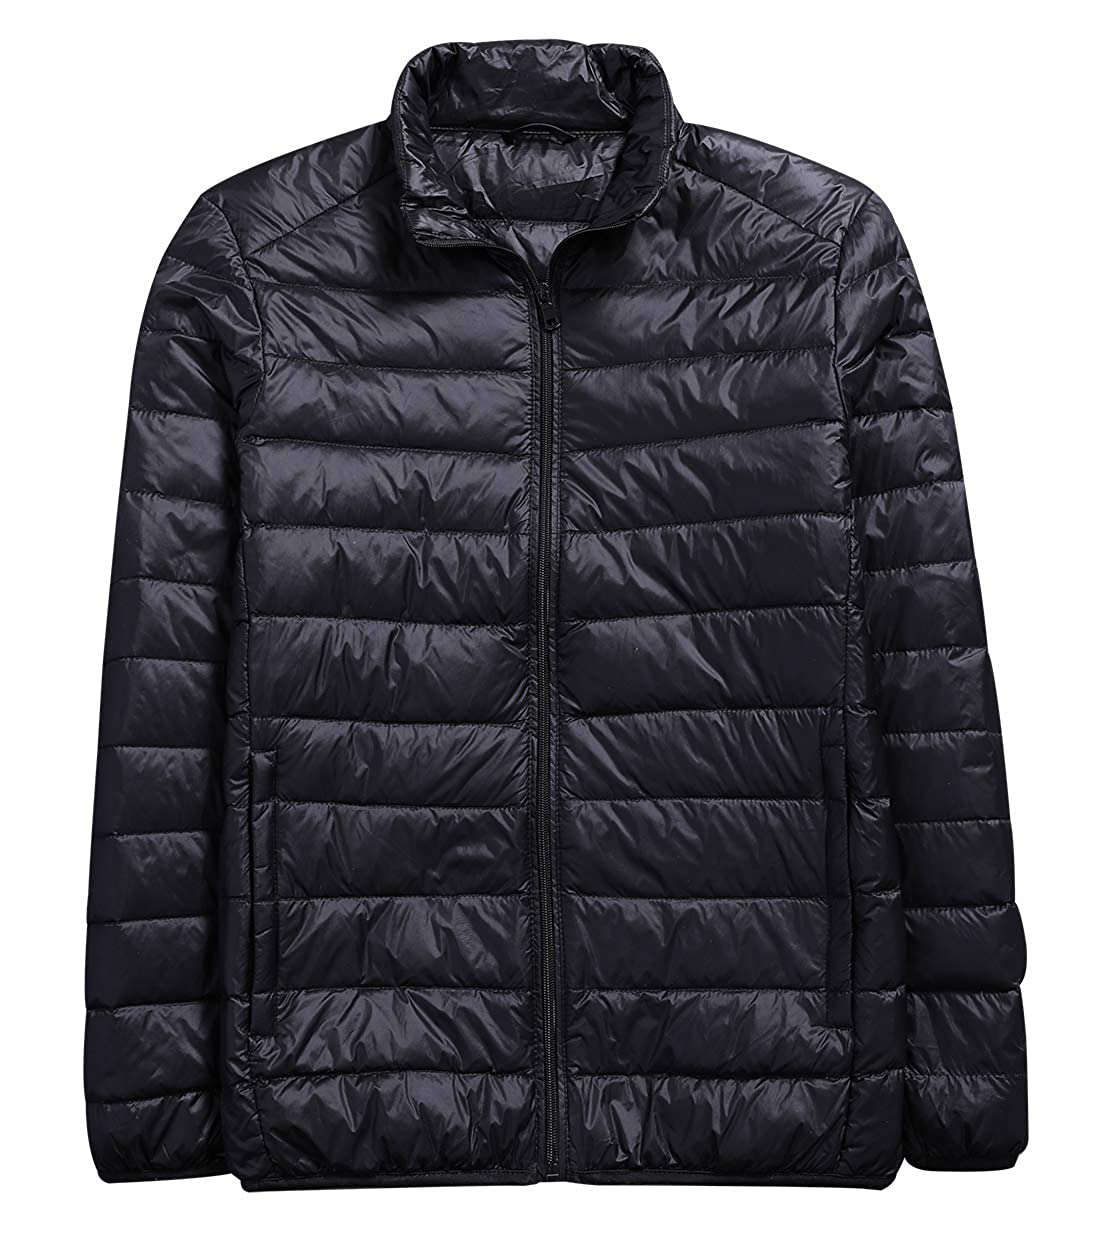 YUNY Men Stand Collar Hood Winter Thick Warm Outerwear Down Jacket 7 L